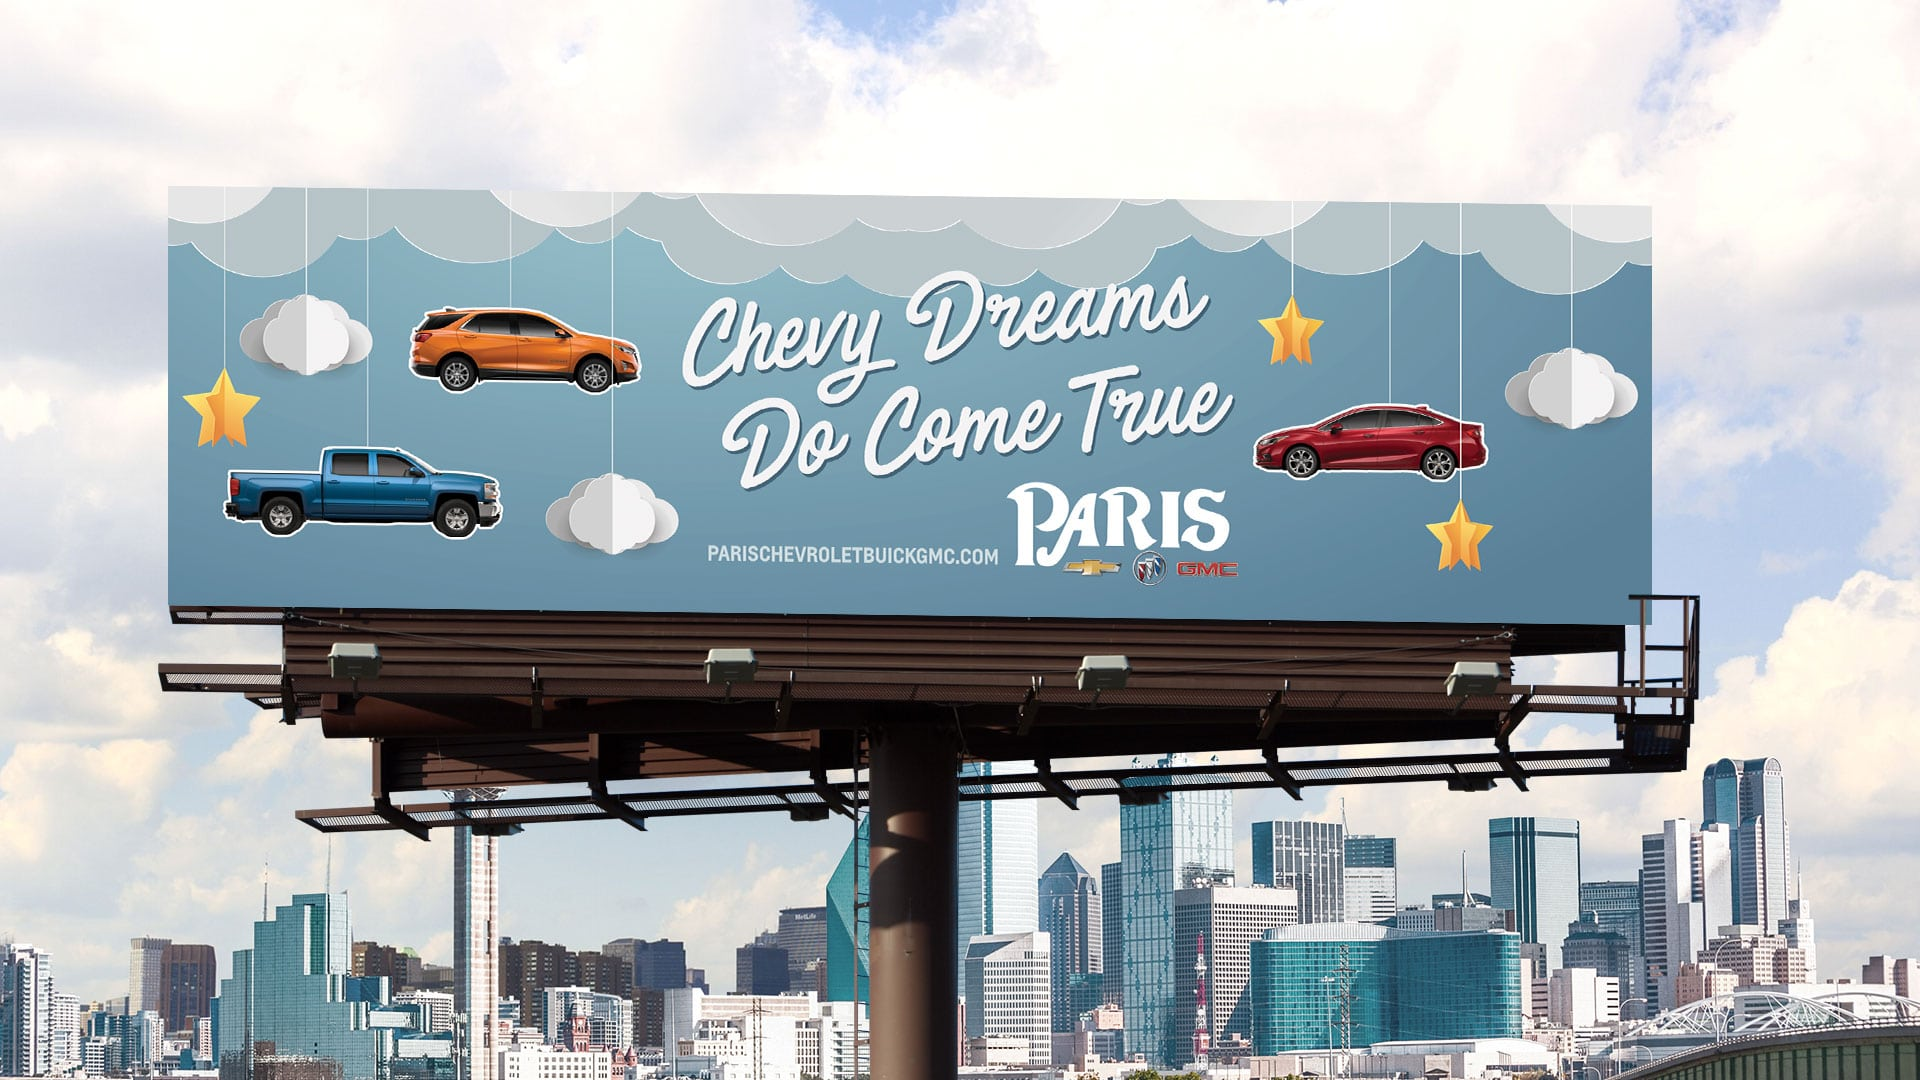 Billboard: Paris Chevrolet Dreams Do Come True